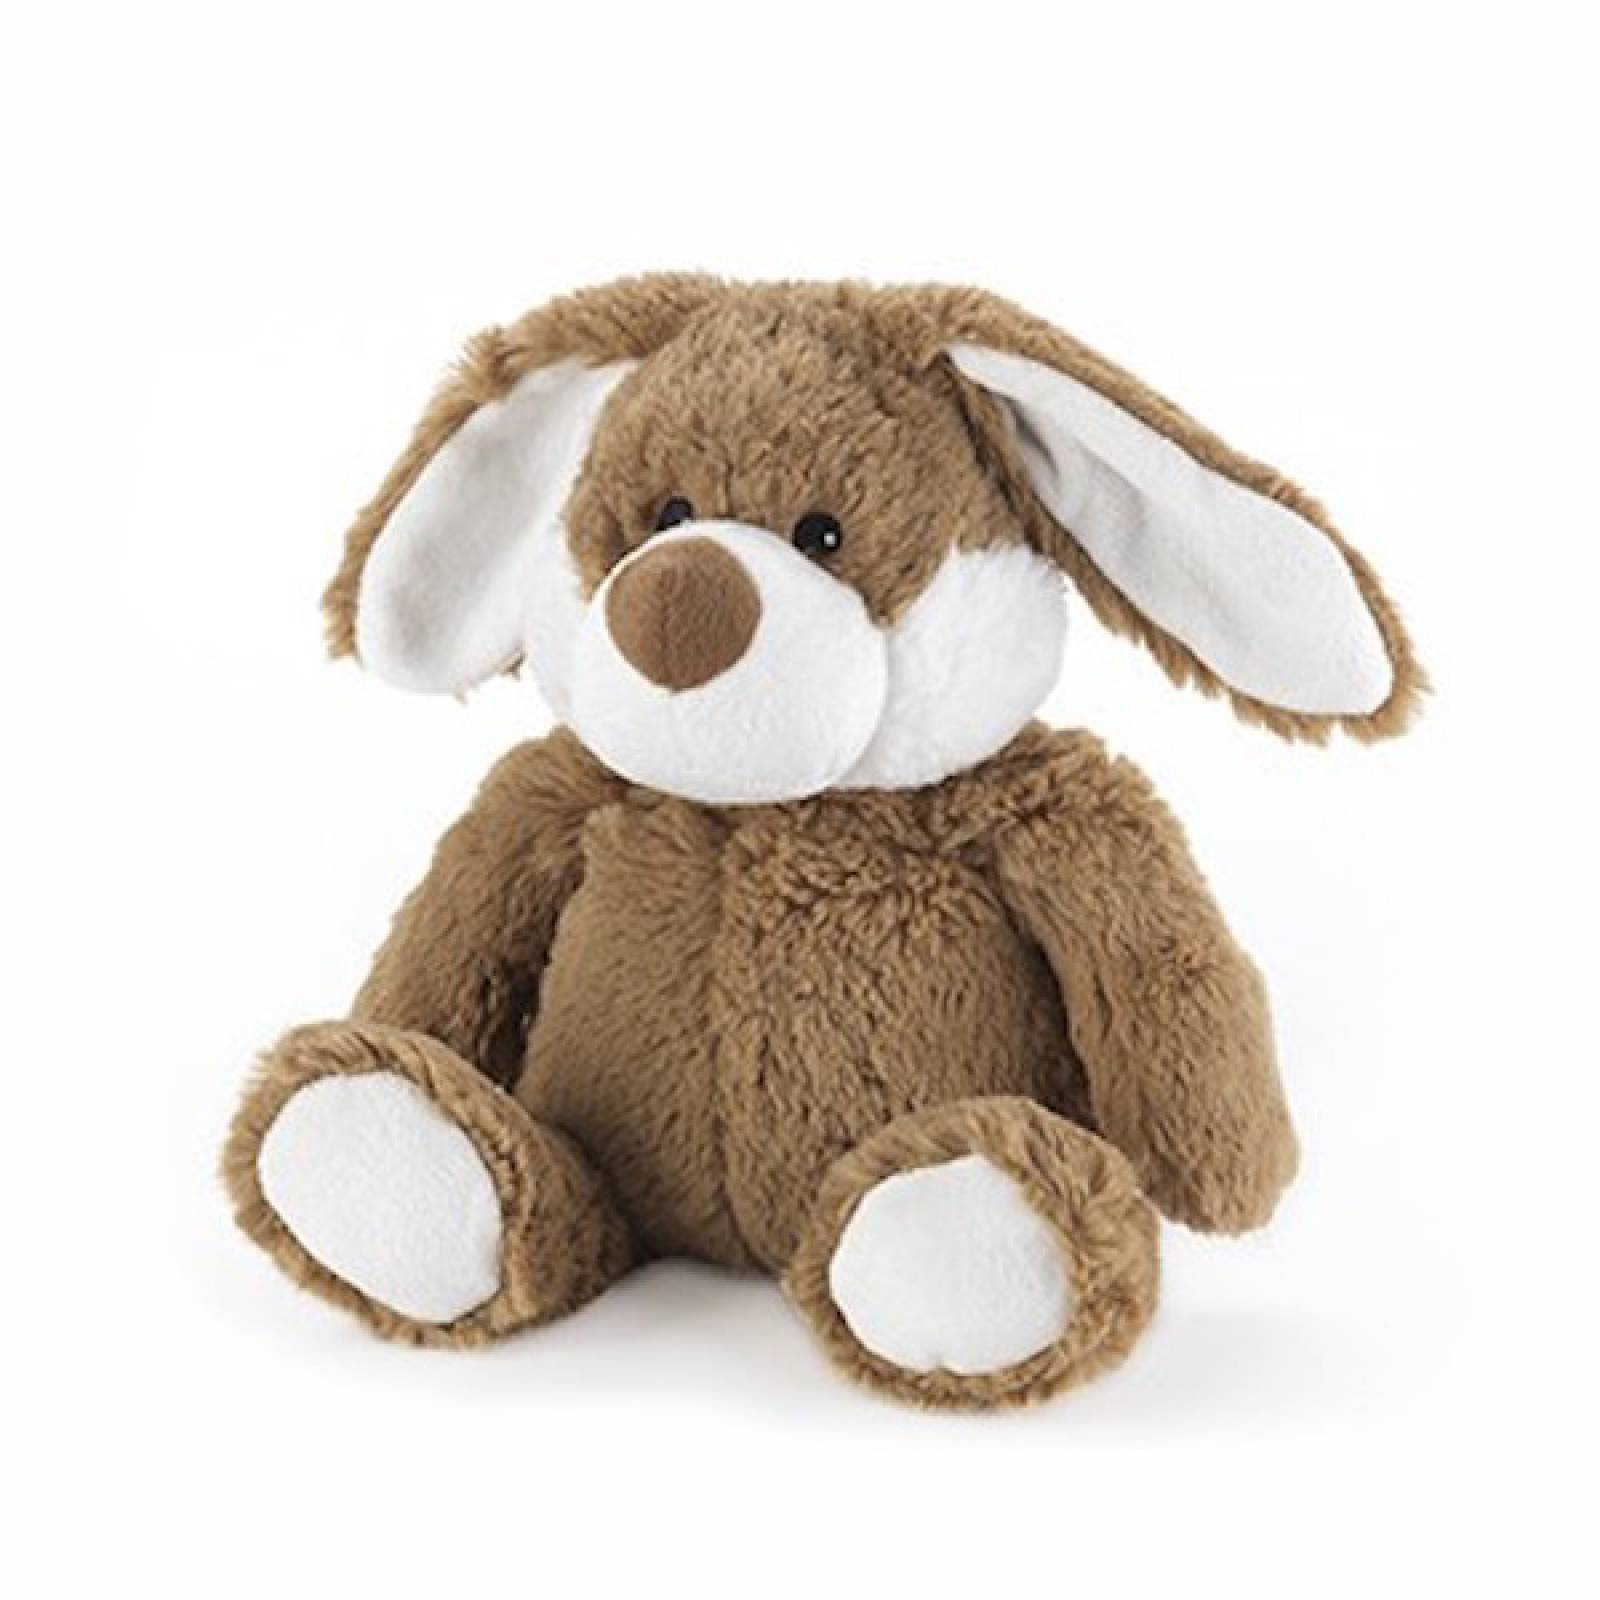 Bunny Microwavable Plush Toy 3+